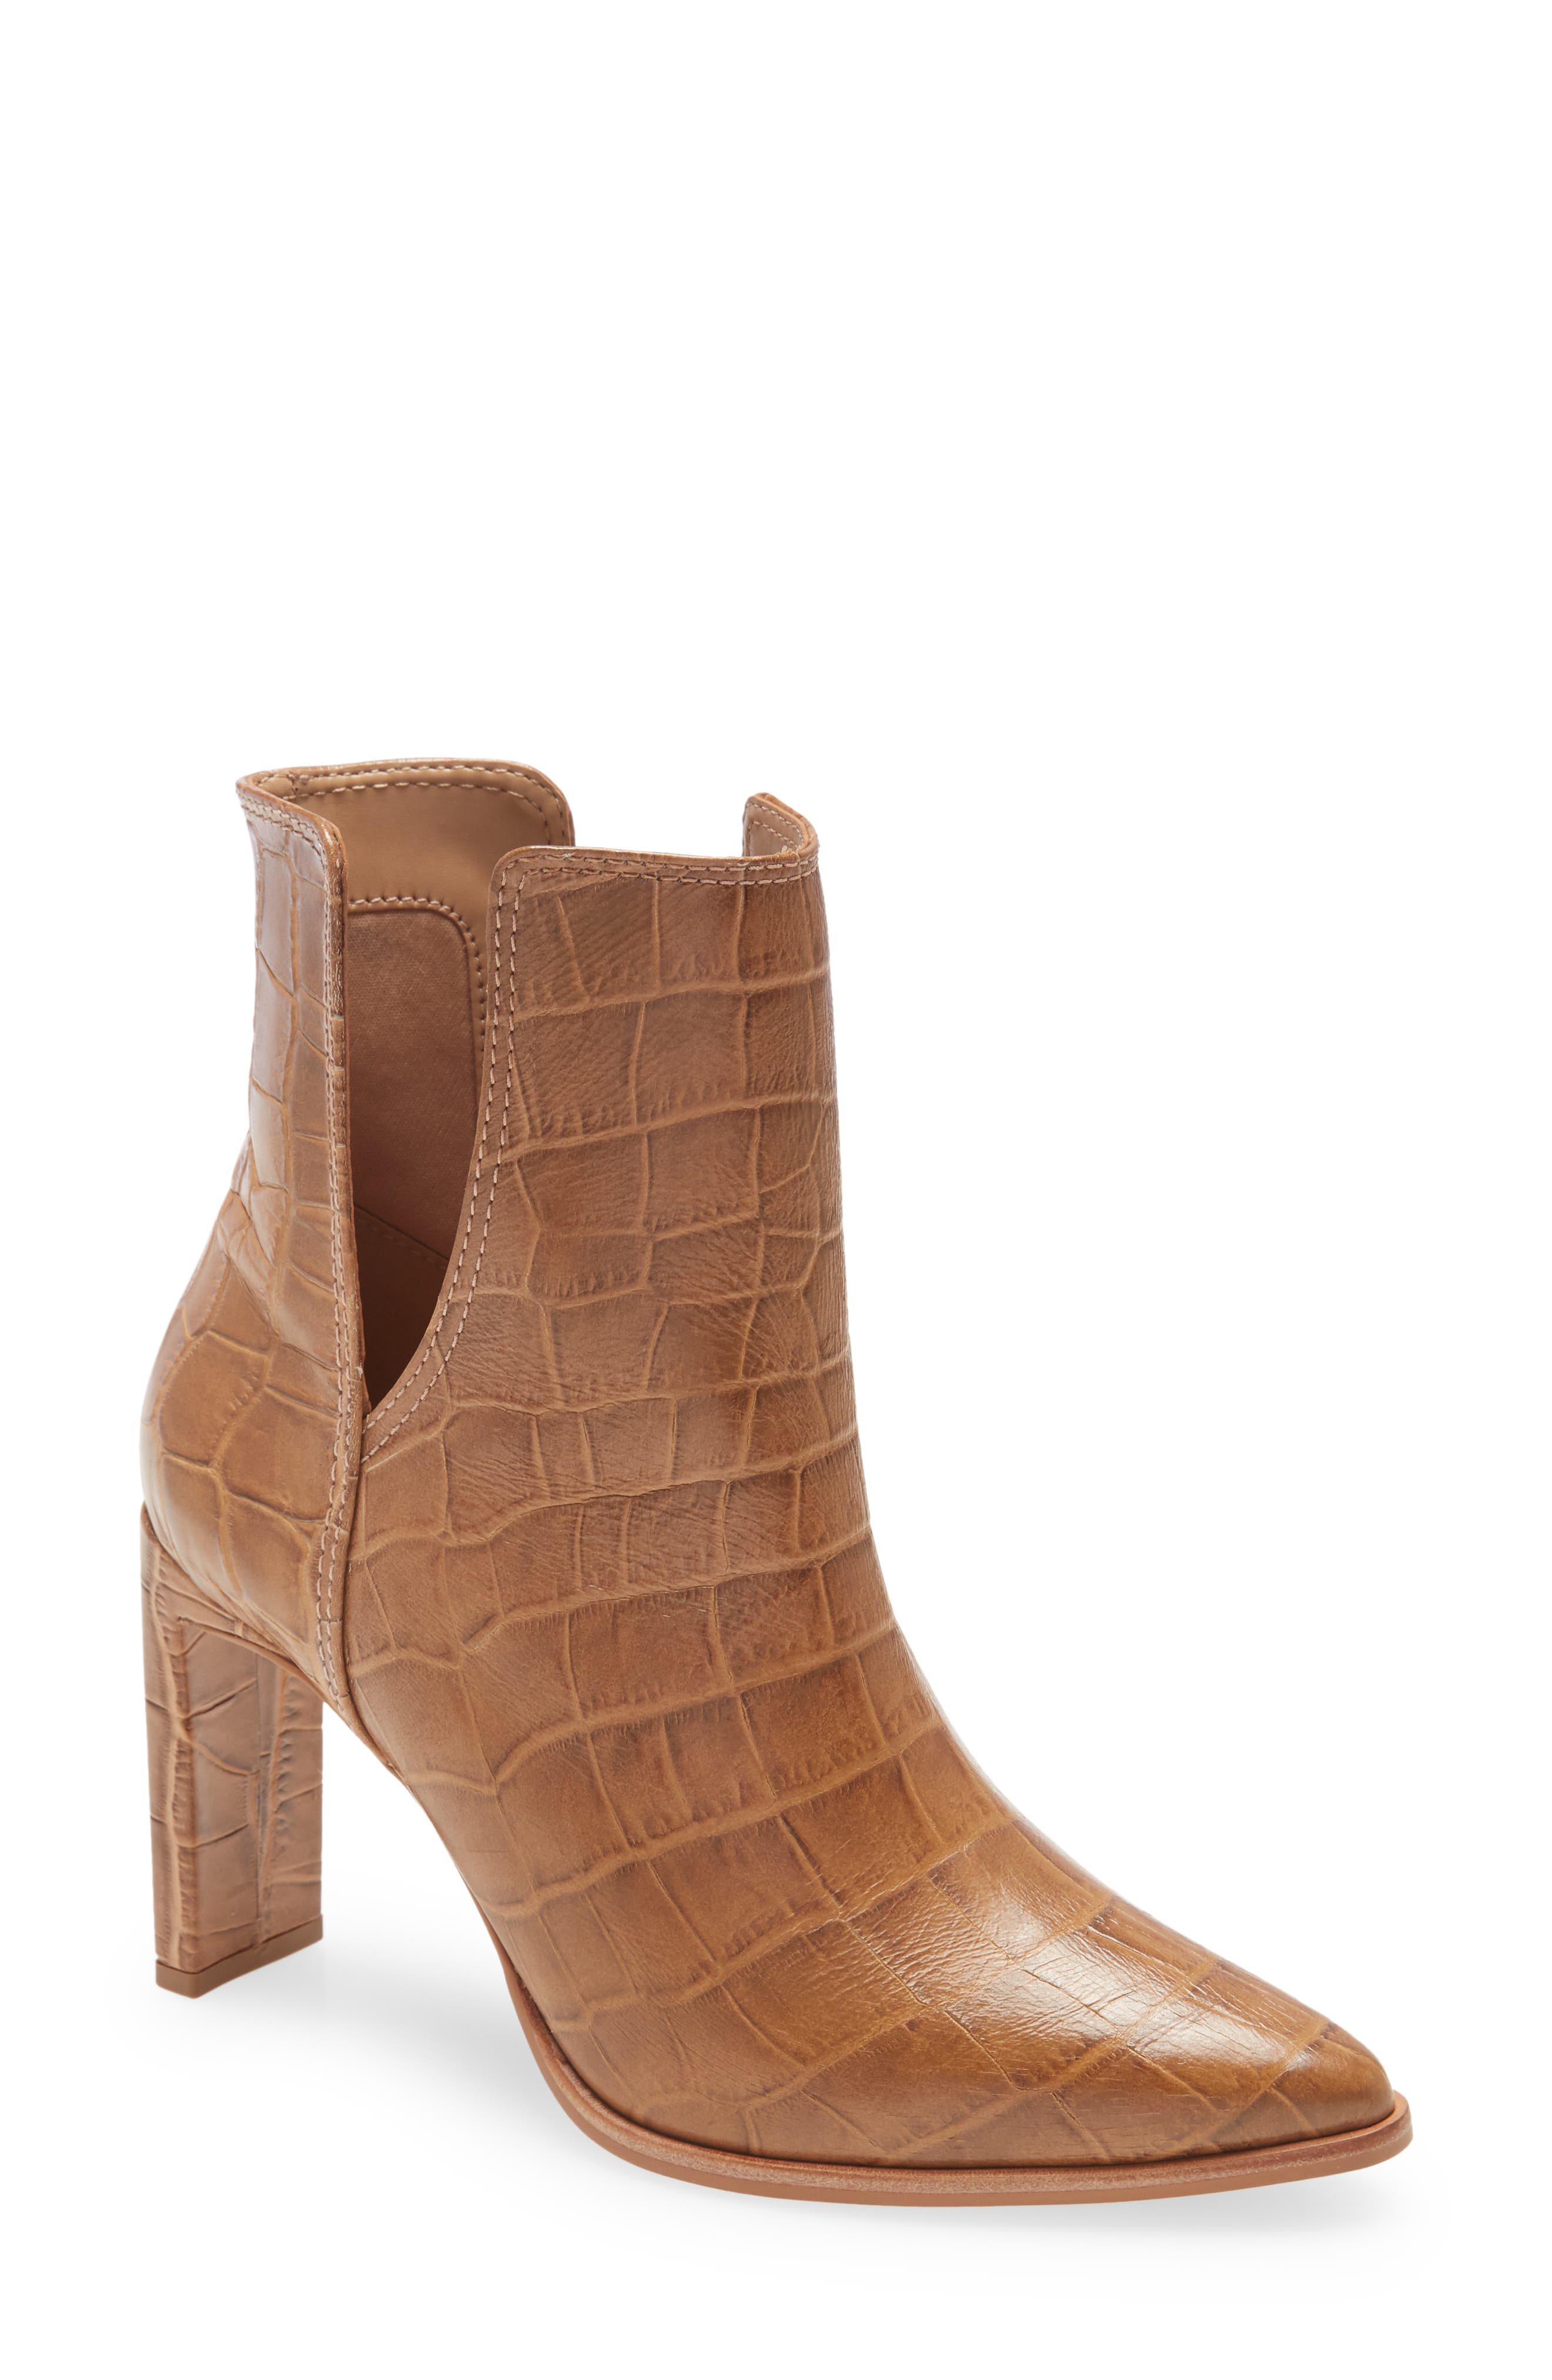 Knoxville Croc Embossed Bootie